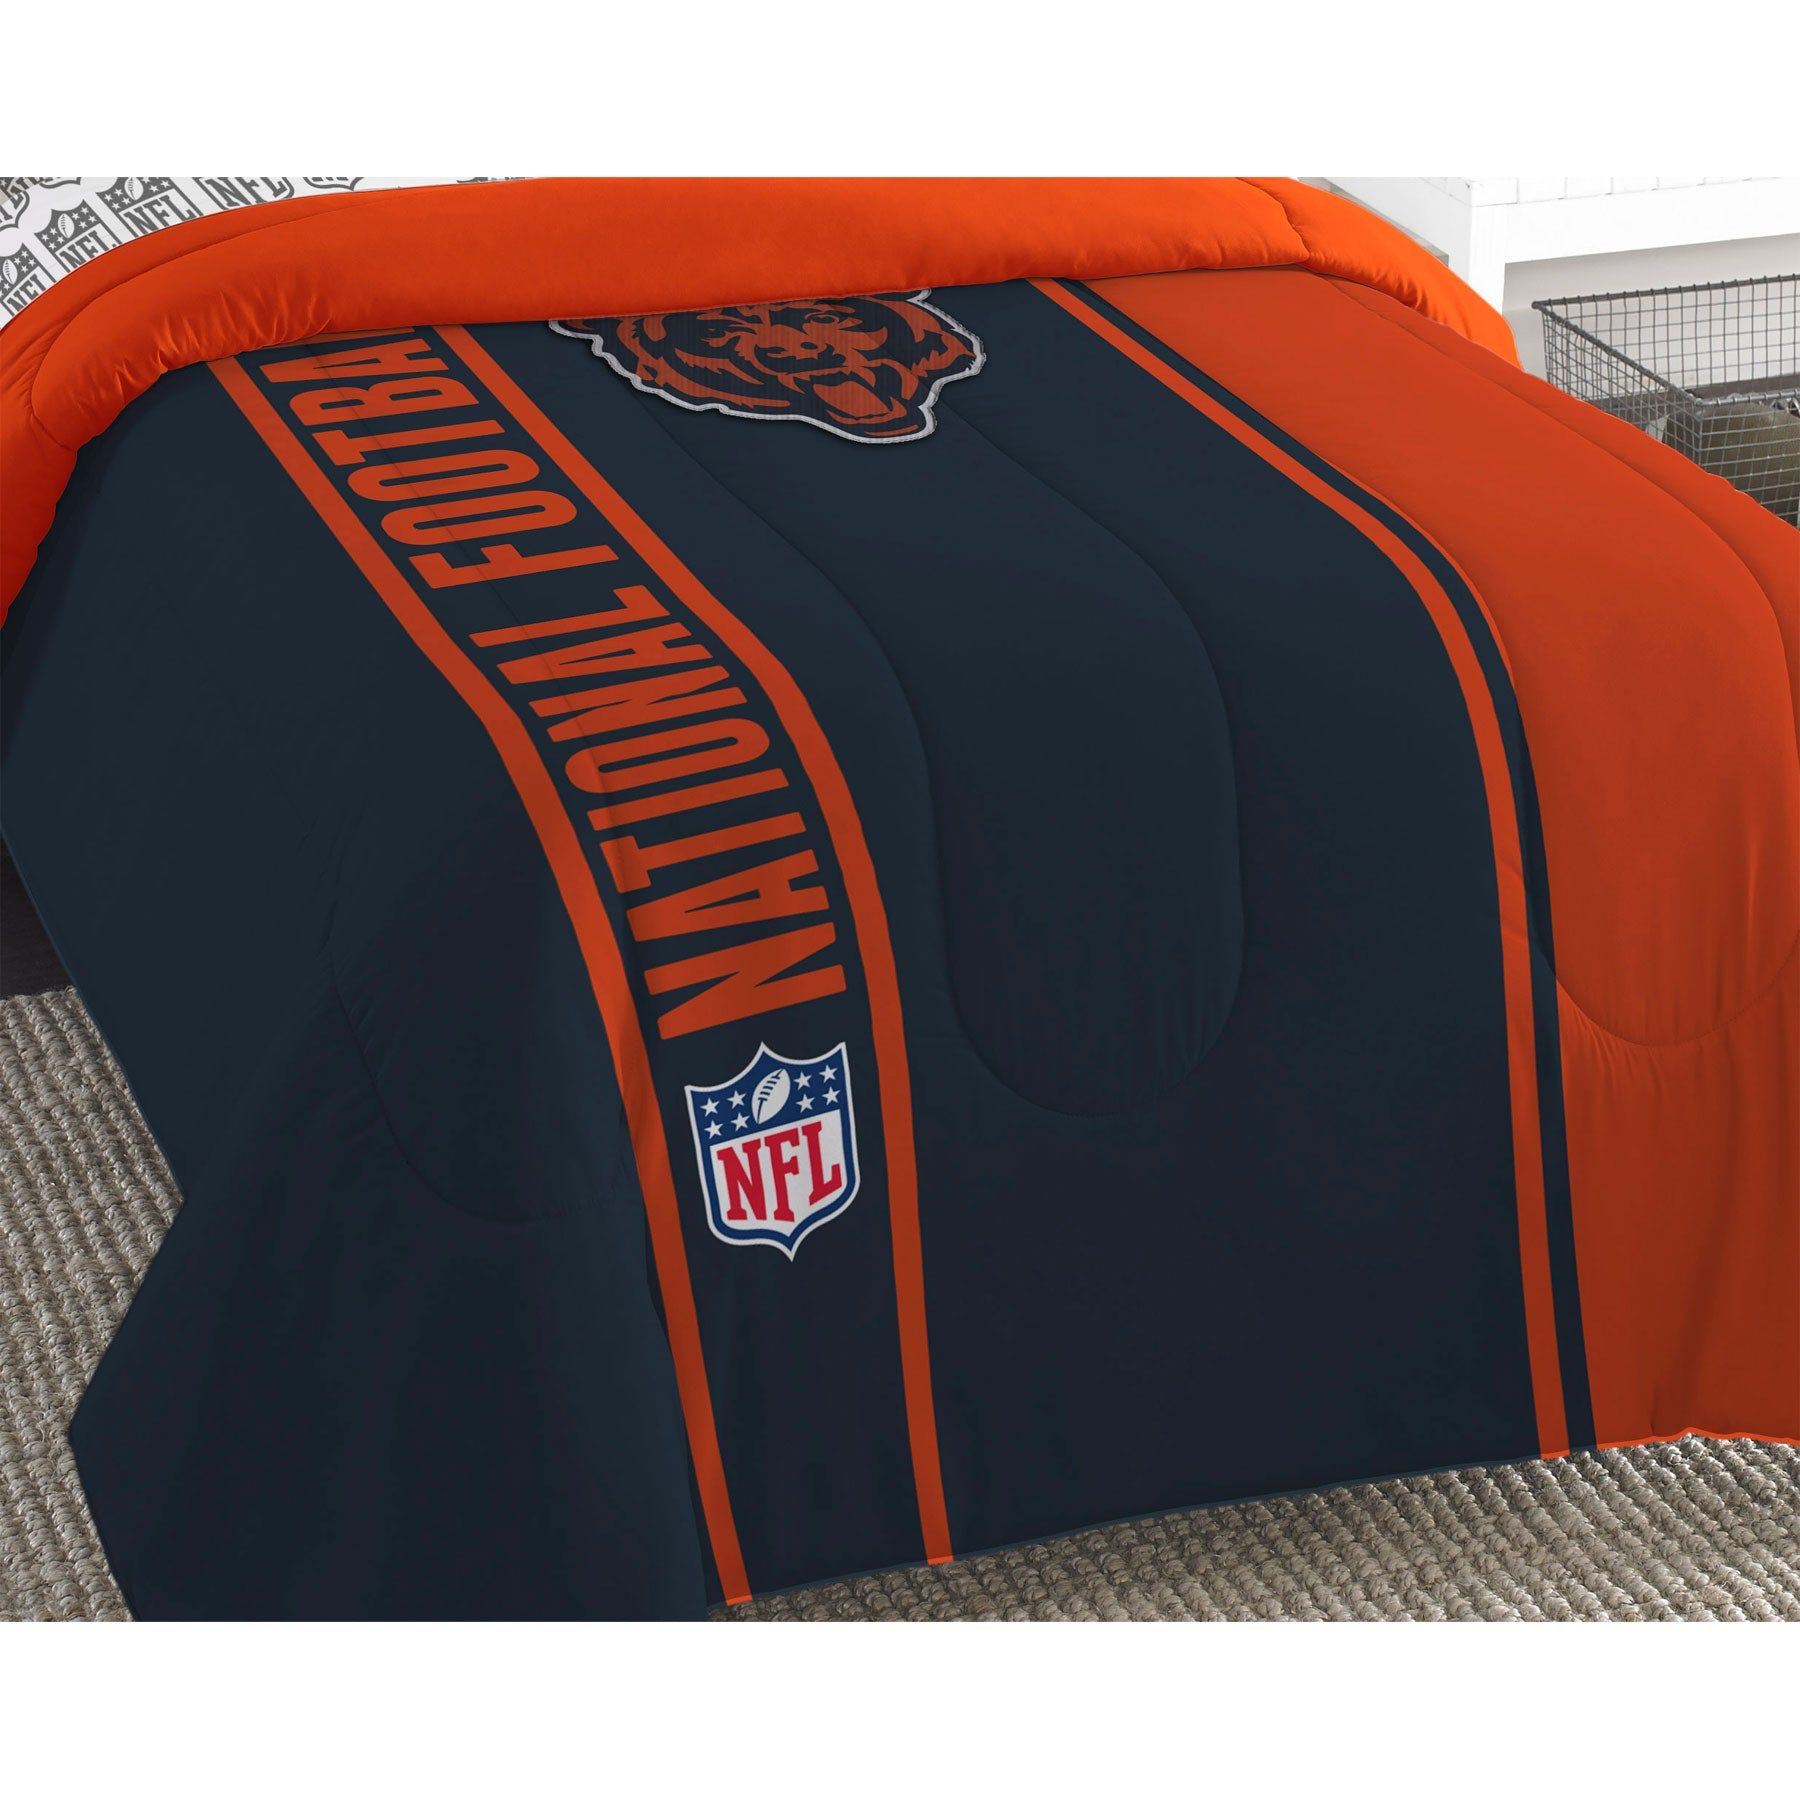 Chicago bears bathroom accessories - Nfl Chicago Bears Bedroom Collection